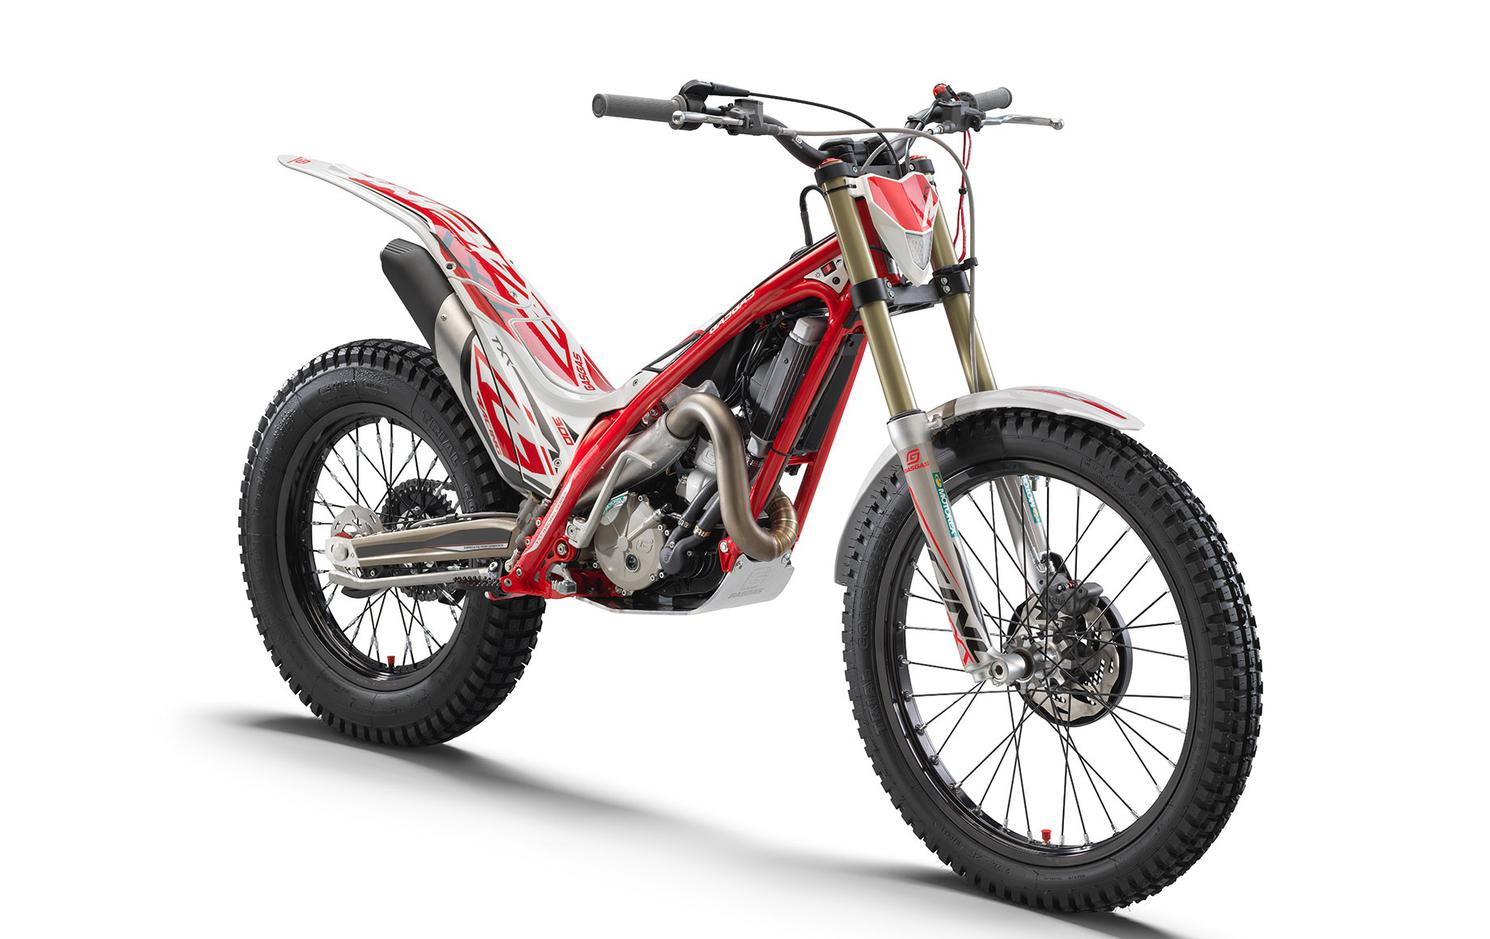 2022 Gas Gas TXT RACING 300 Frais inclus+Taxes